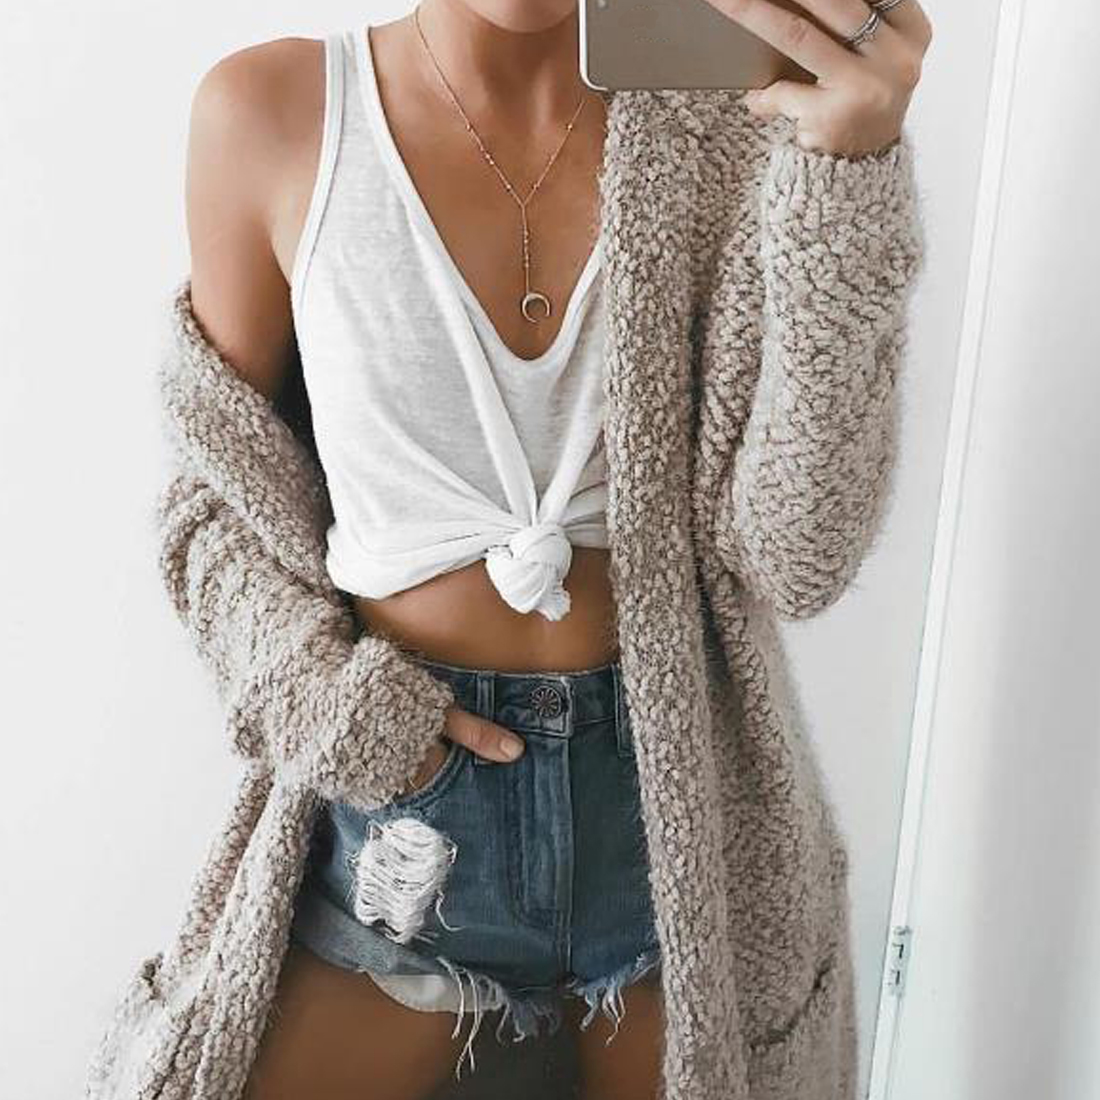 YJSFG HOUSE Hot New Women Long Cardigan Sweater Long Solid Sweater Sleeve Knitted Outwear Thick Autumn Winter Jacket Coat Tops